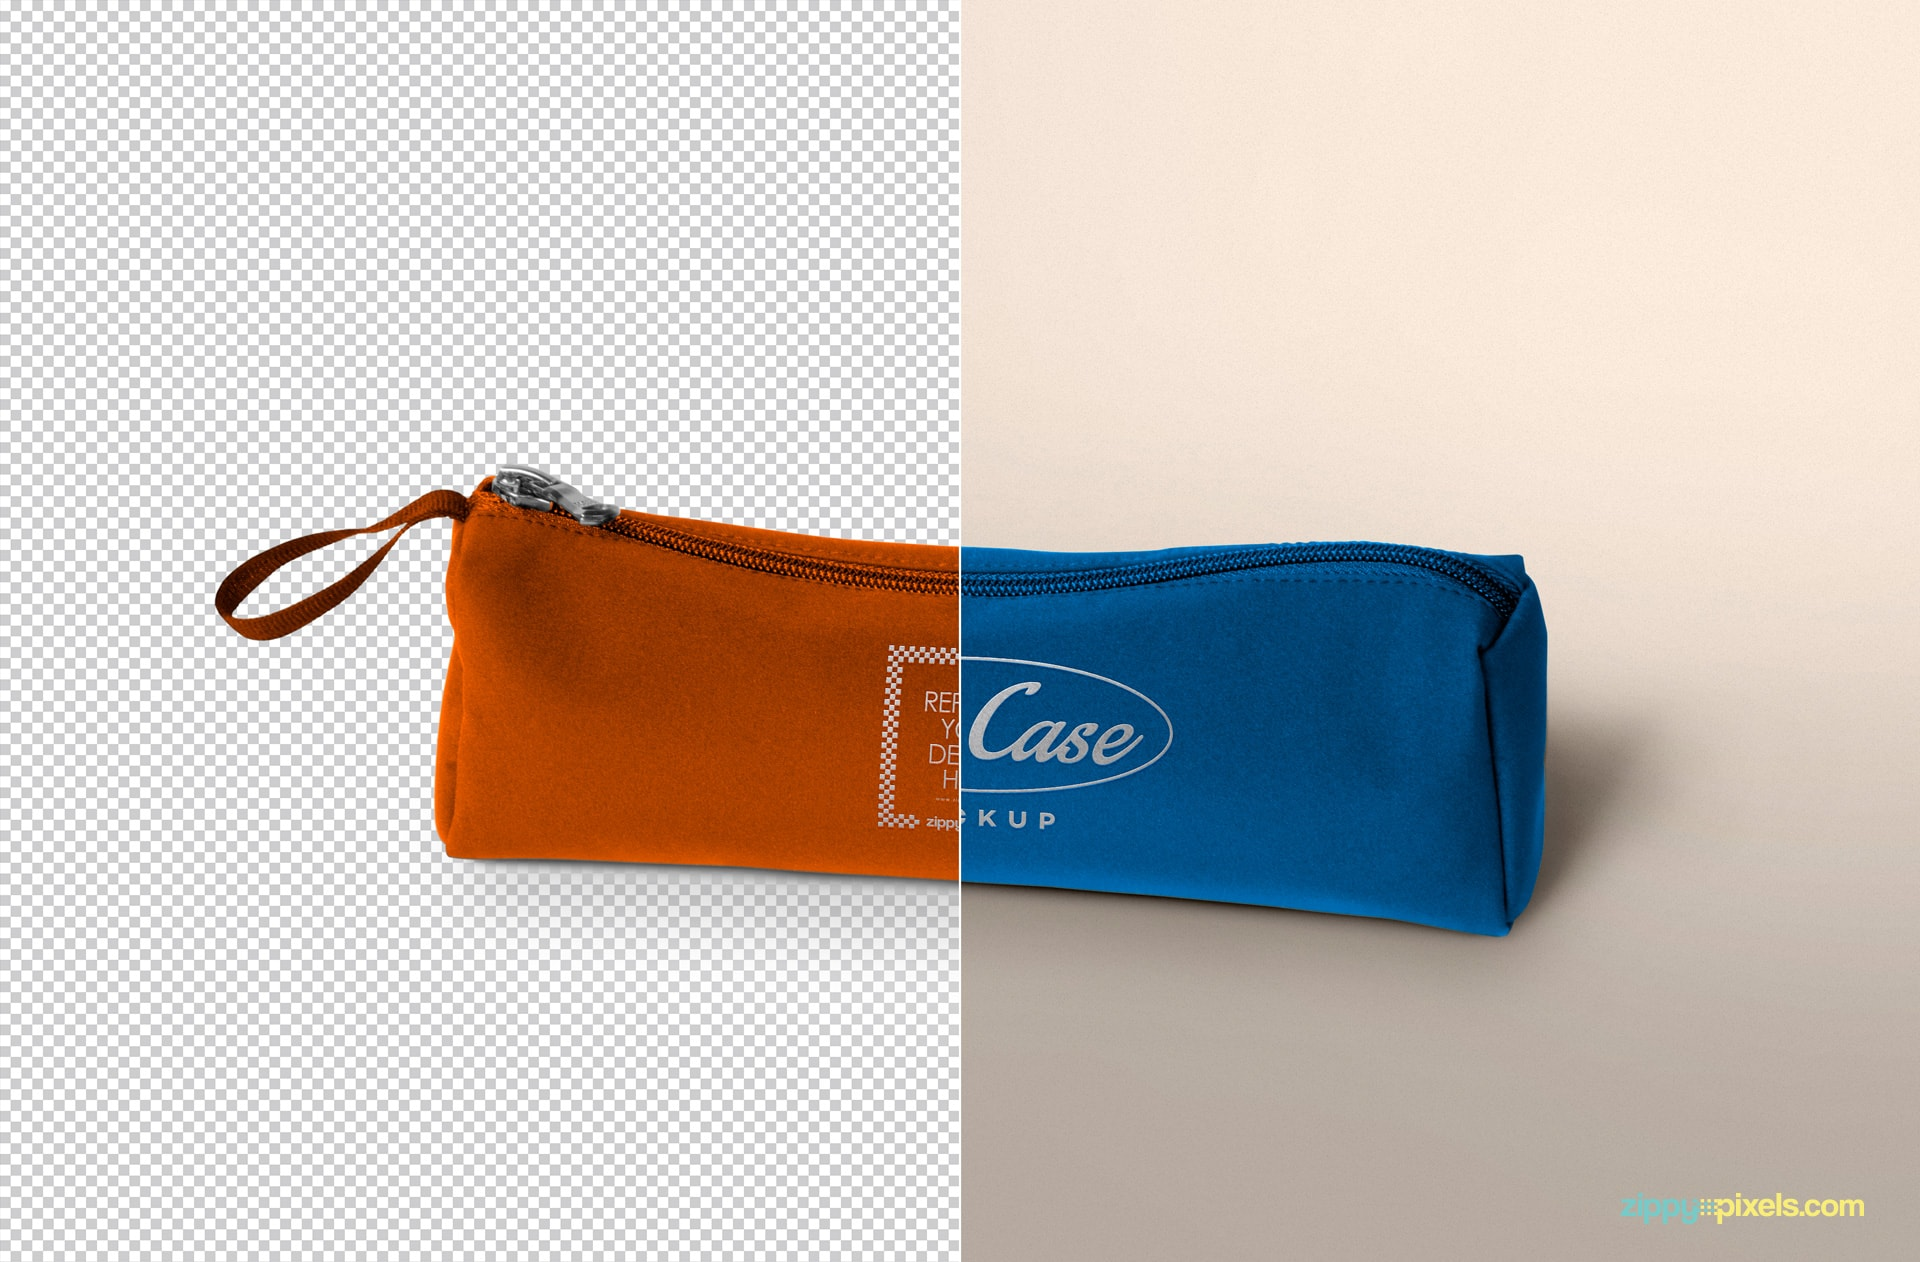 free realistic pencil case mock-up for presentation designs